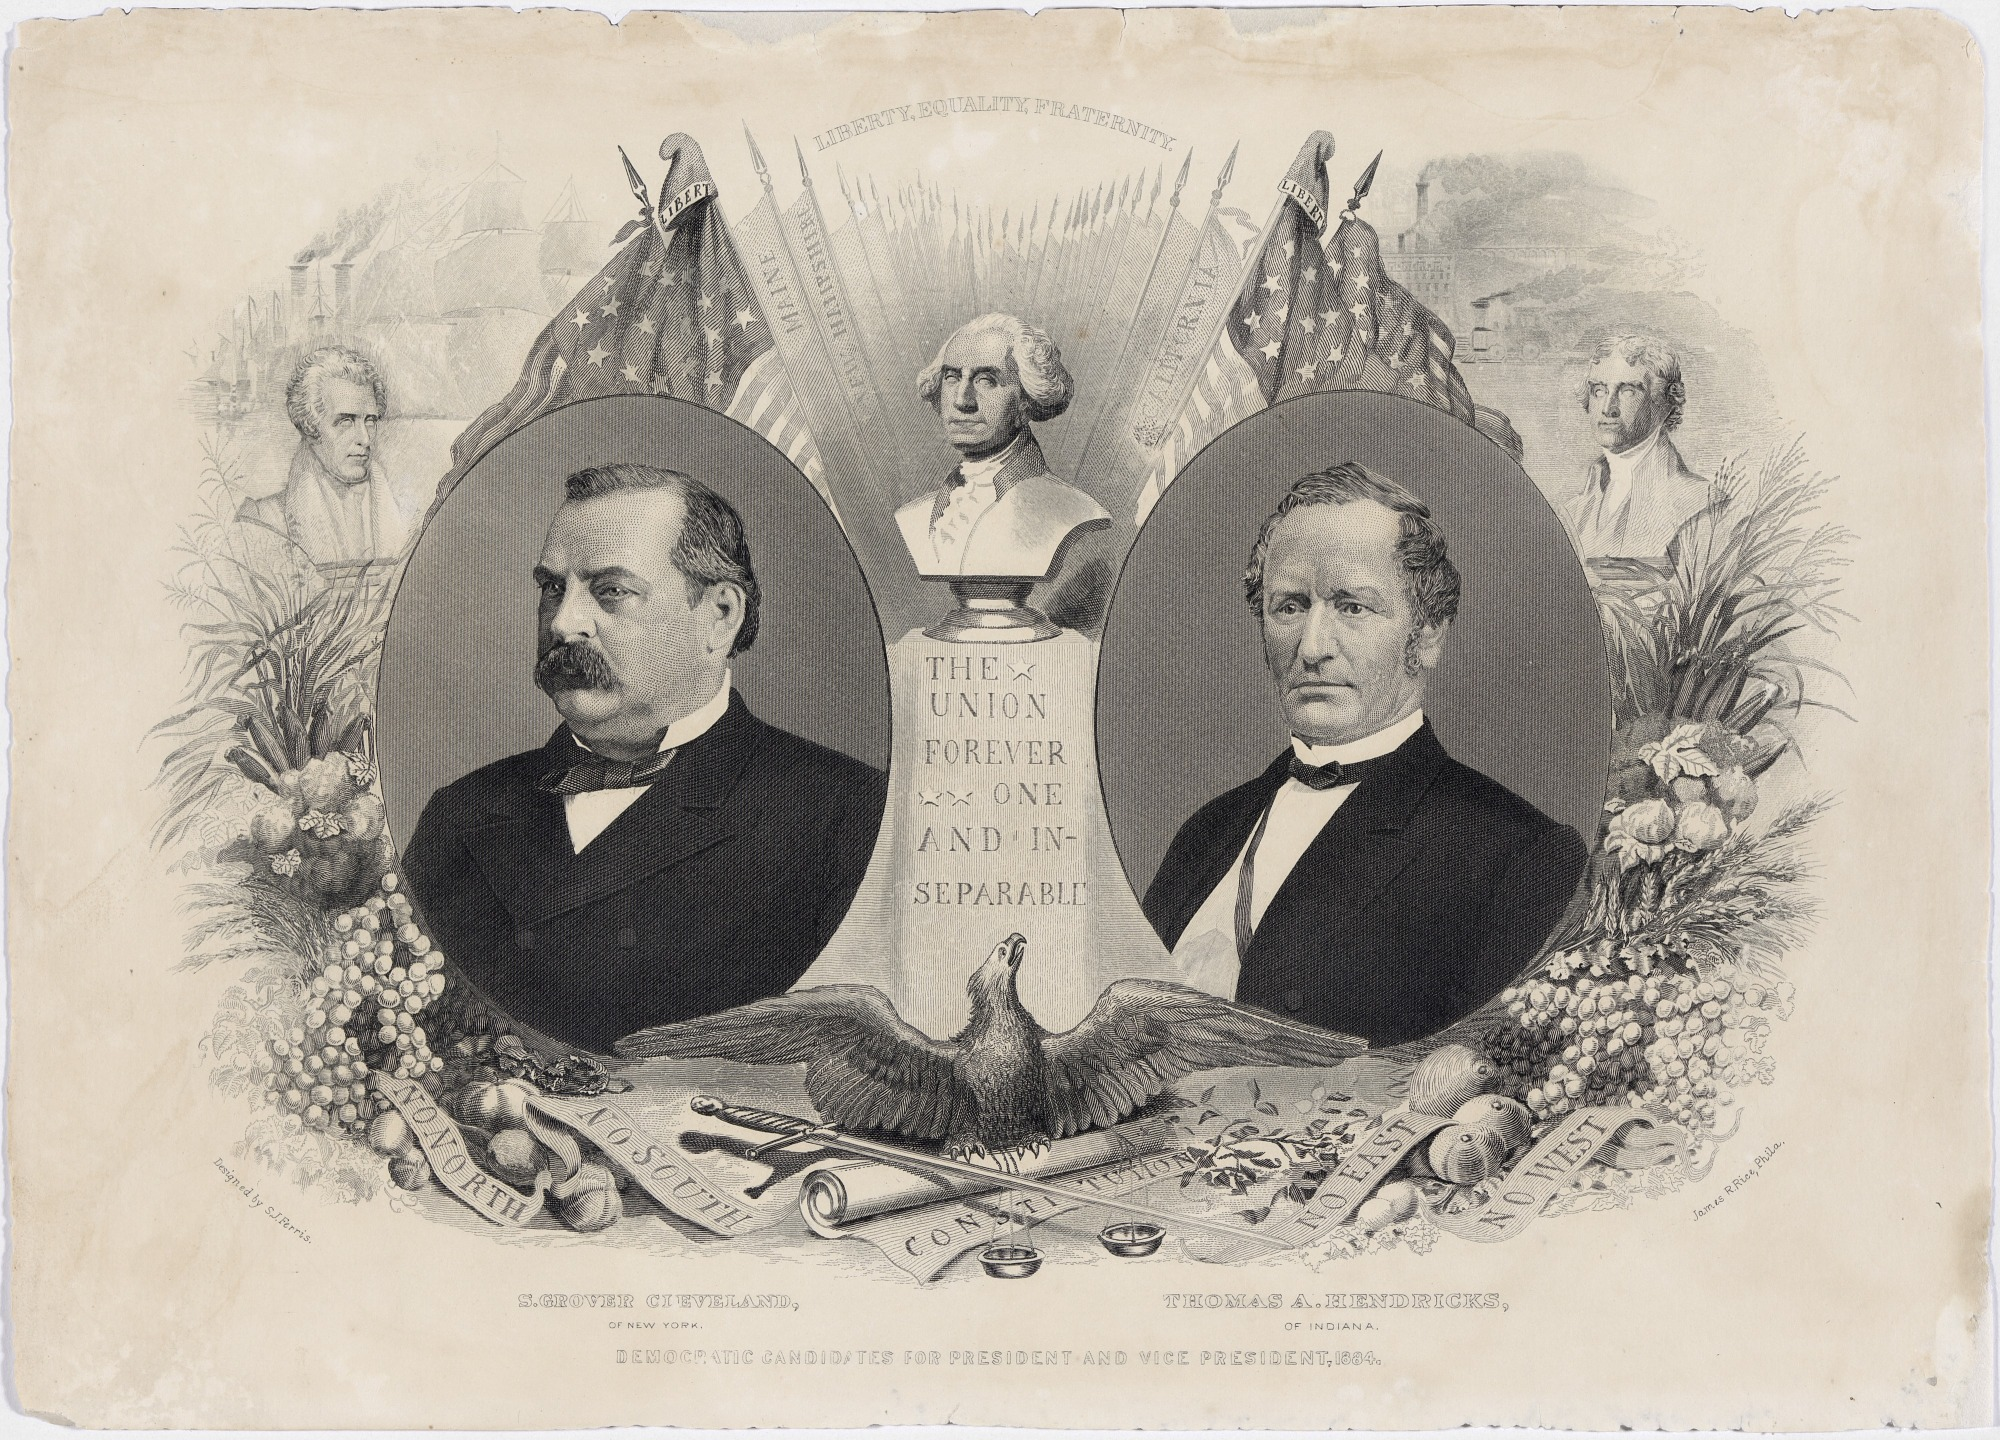 Democratic Candidates for President and Vice President, 1884